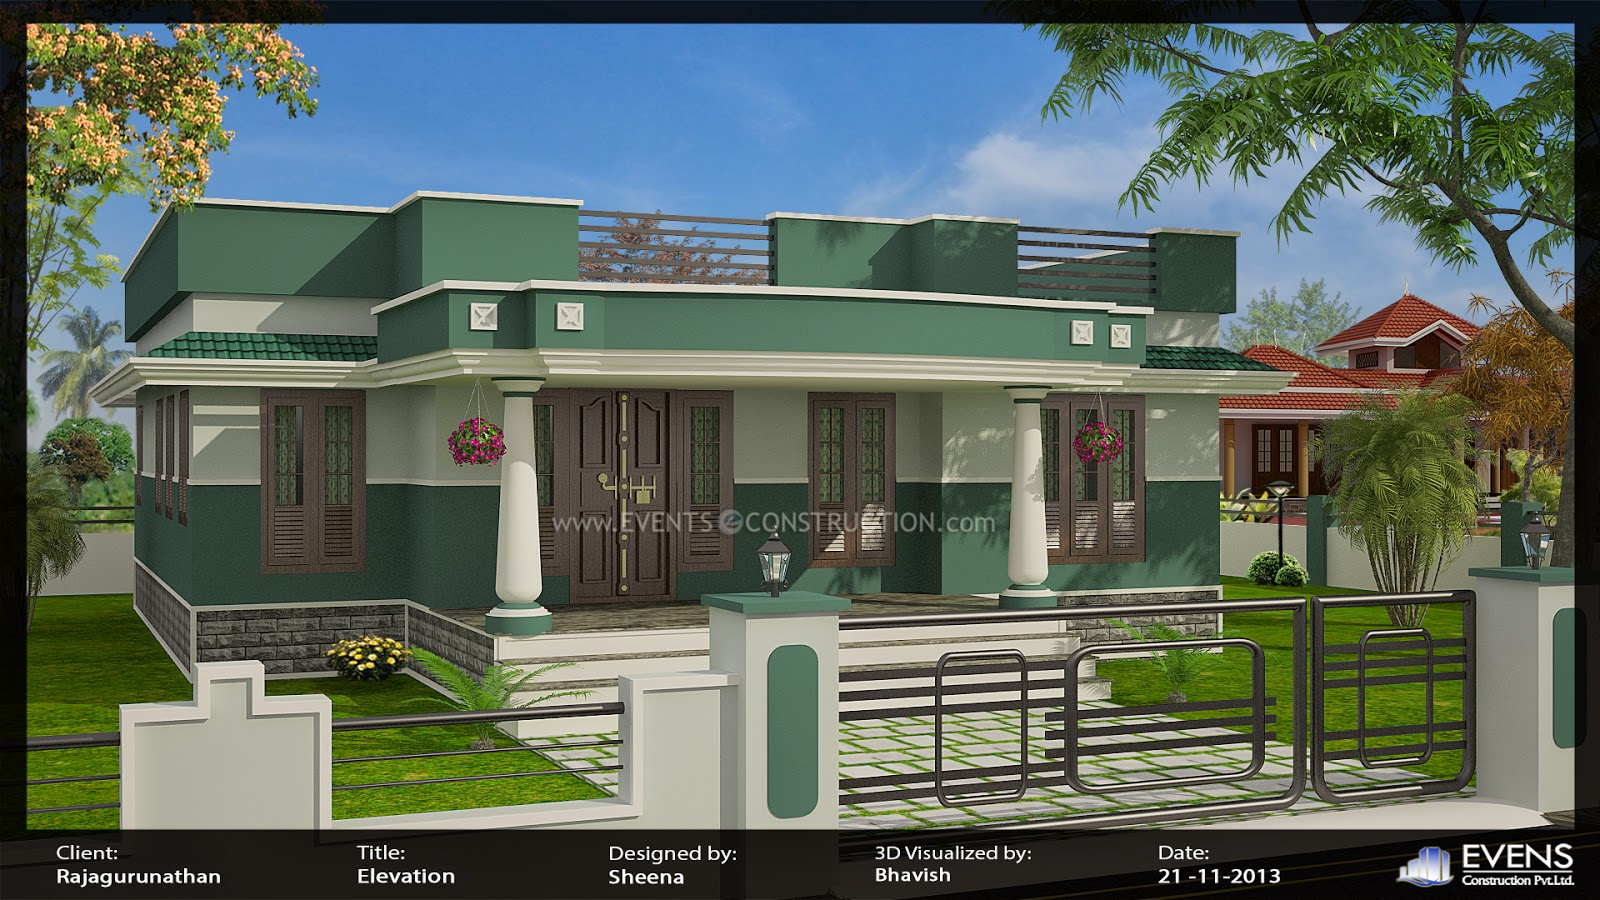 Evens construction pvt ltd march 2014 for Window design for house in india